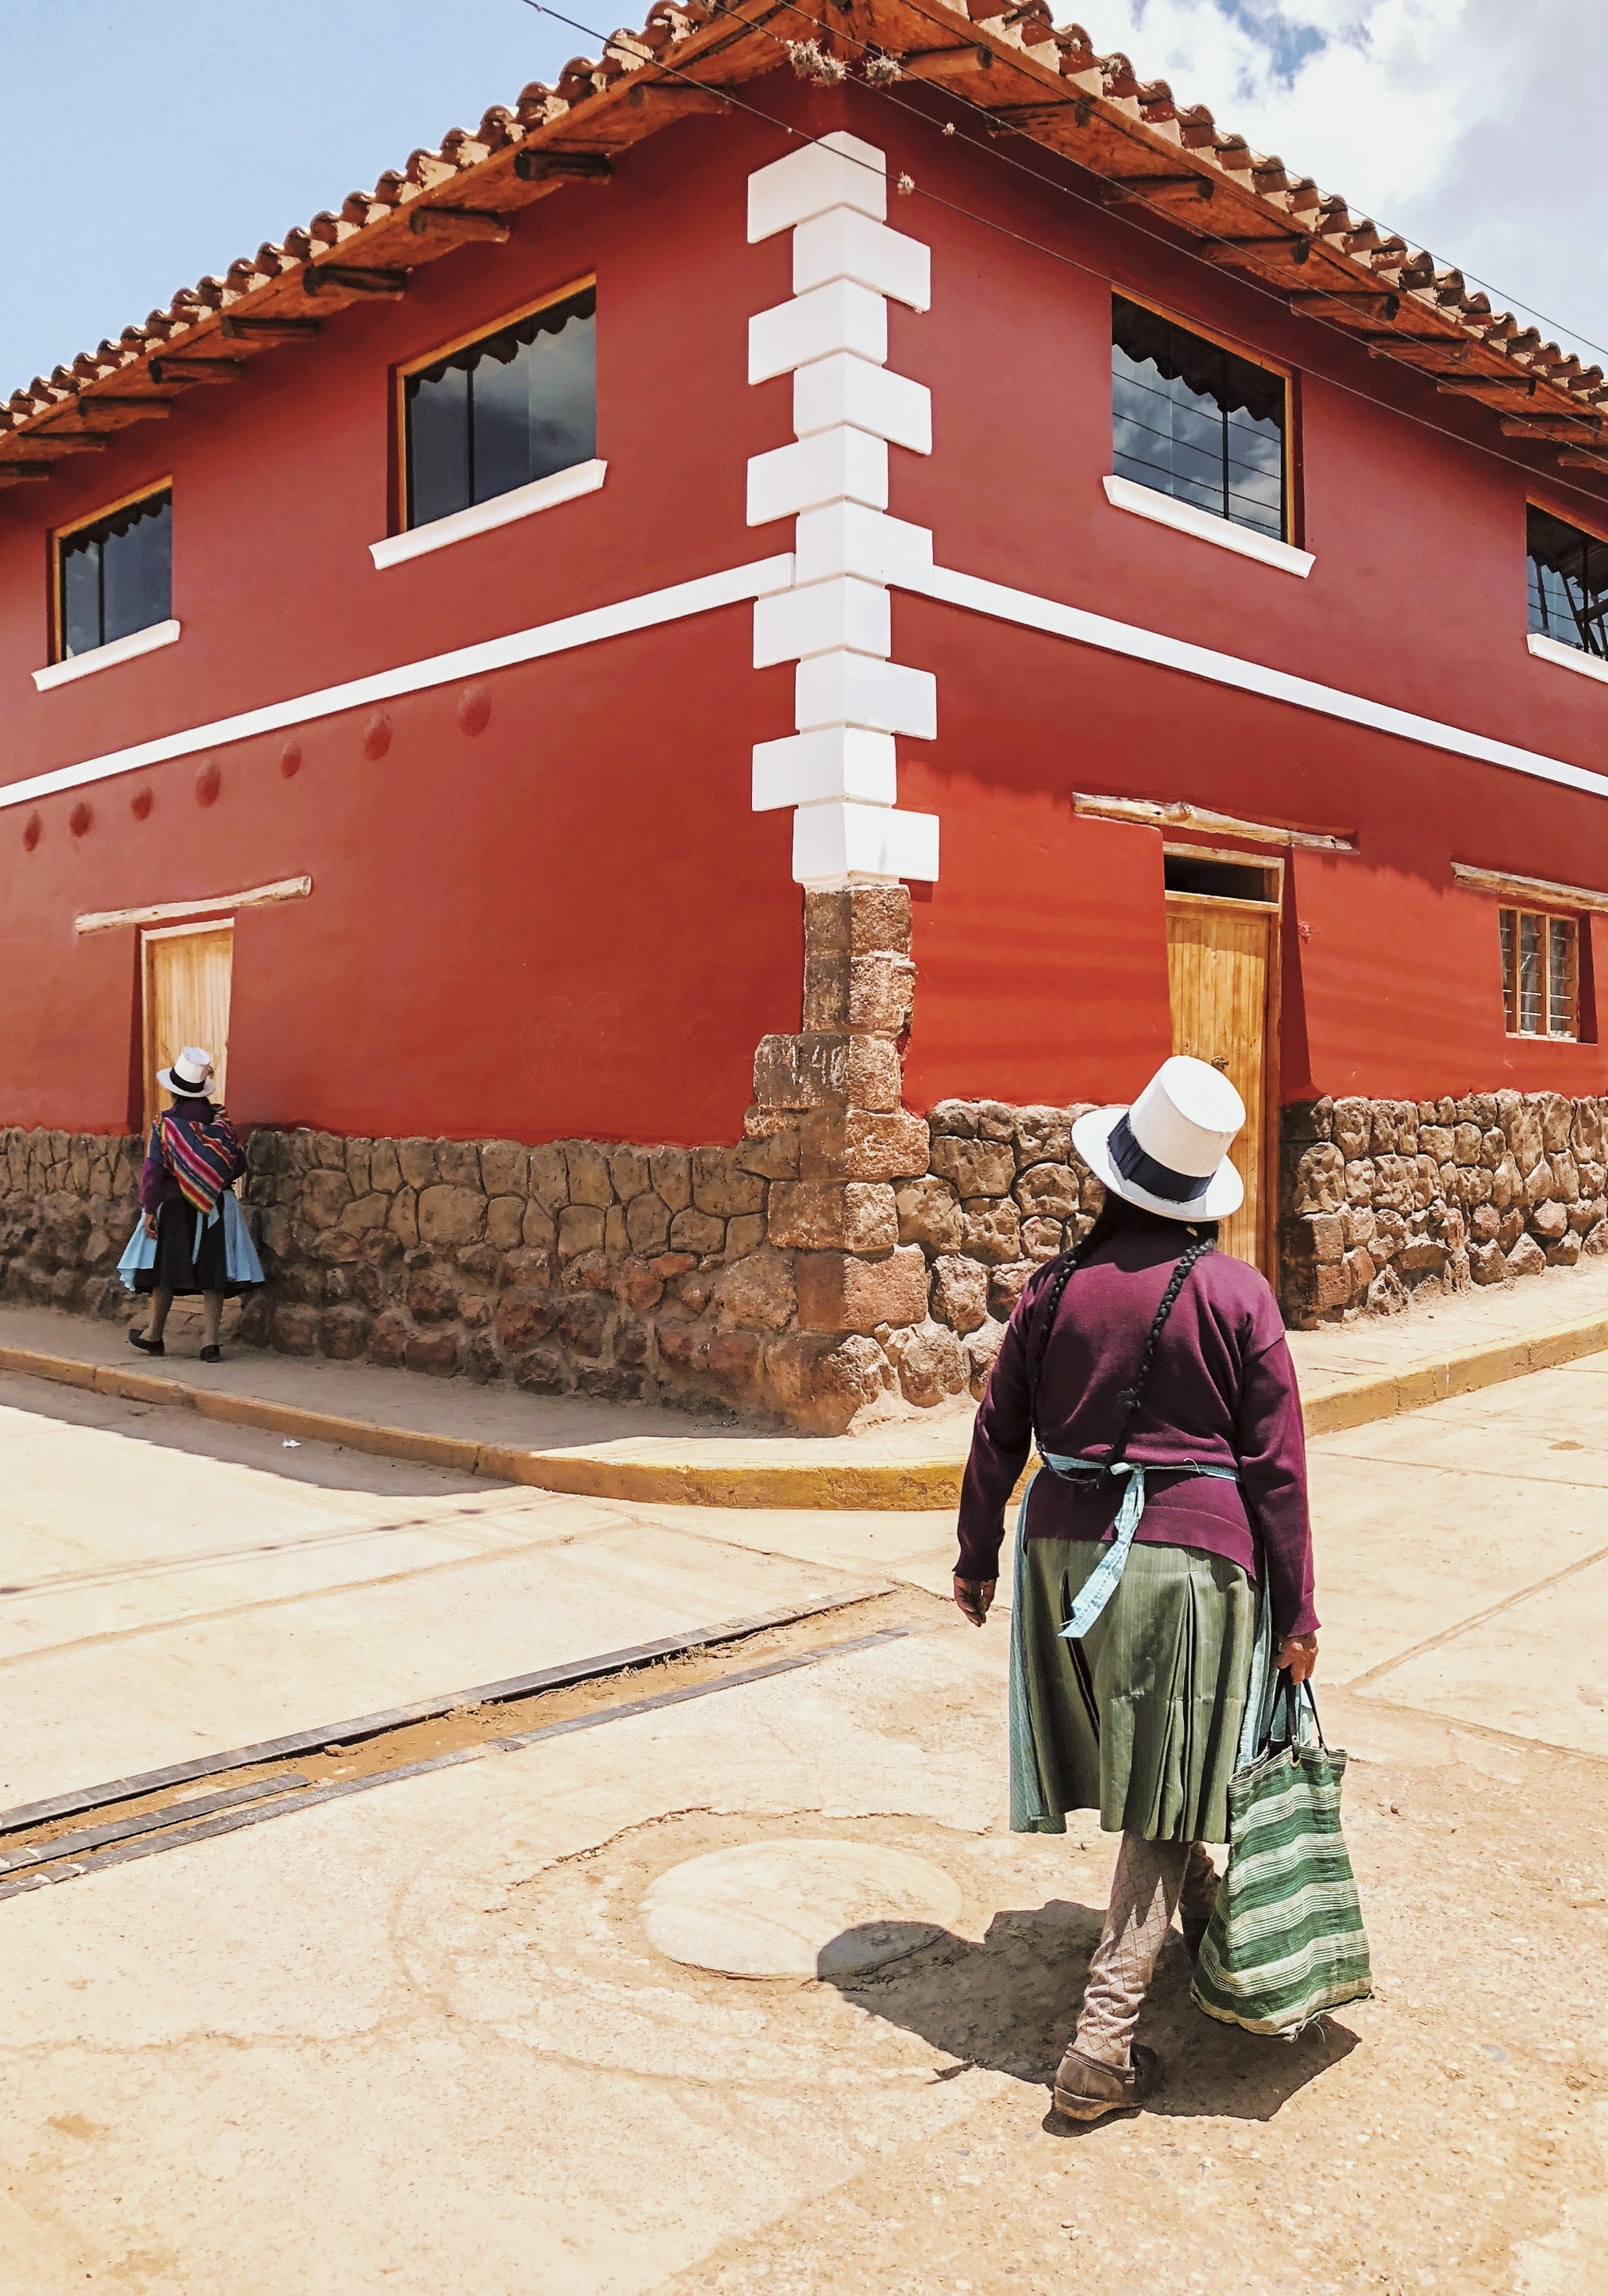 Locals walk in the town of Maras.